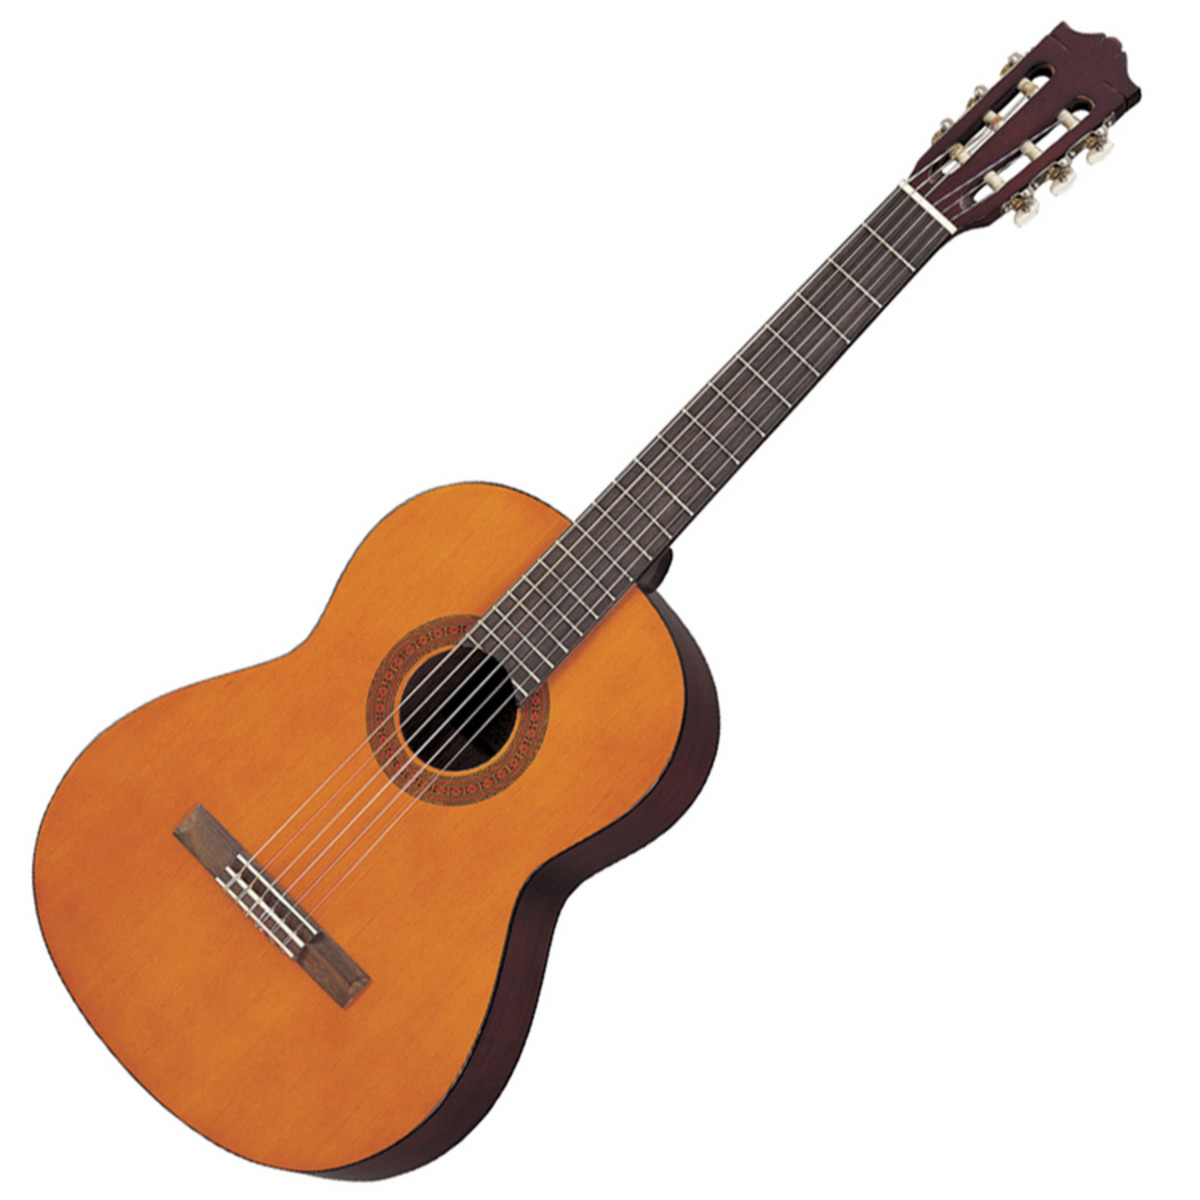 yamaha c40 classique guitare acoustique d 39 occasion. Black Bedroom Furniture Sets. Home Design Ideas